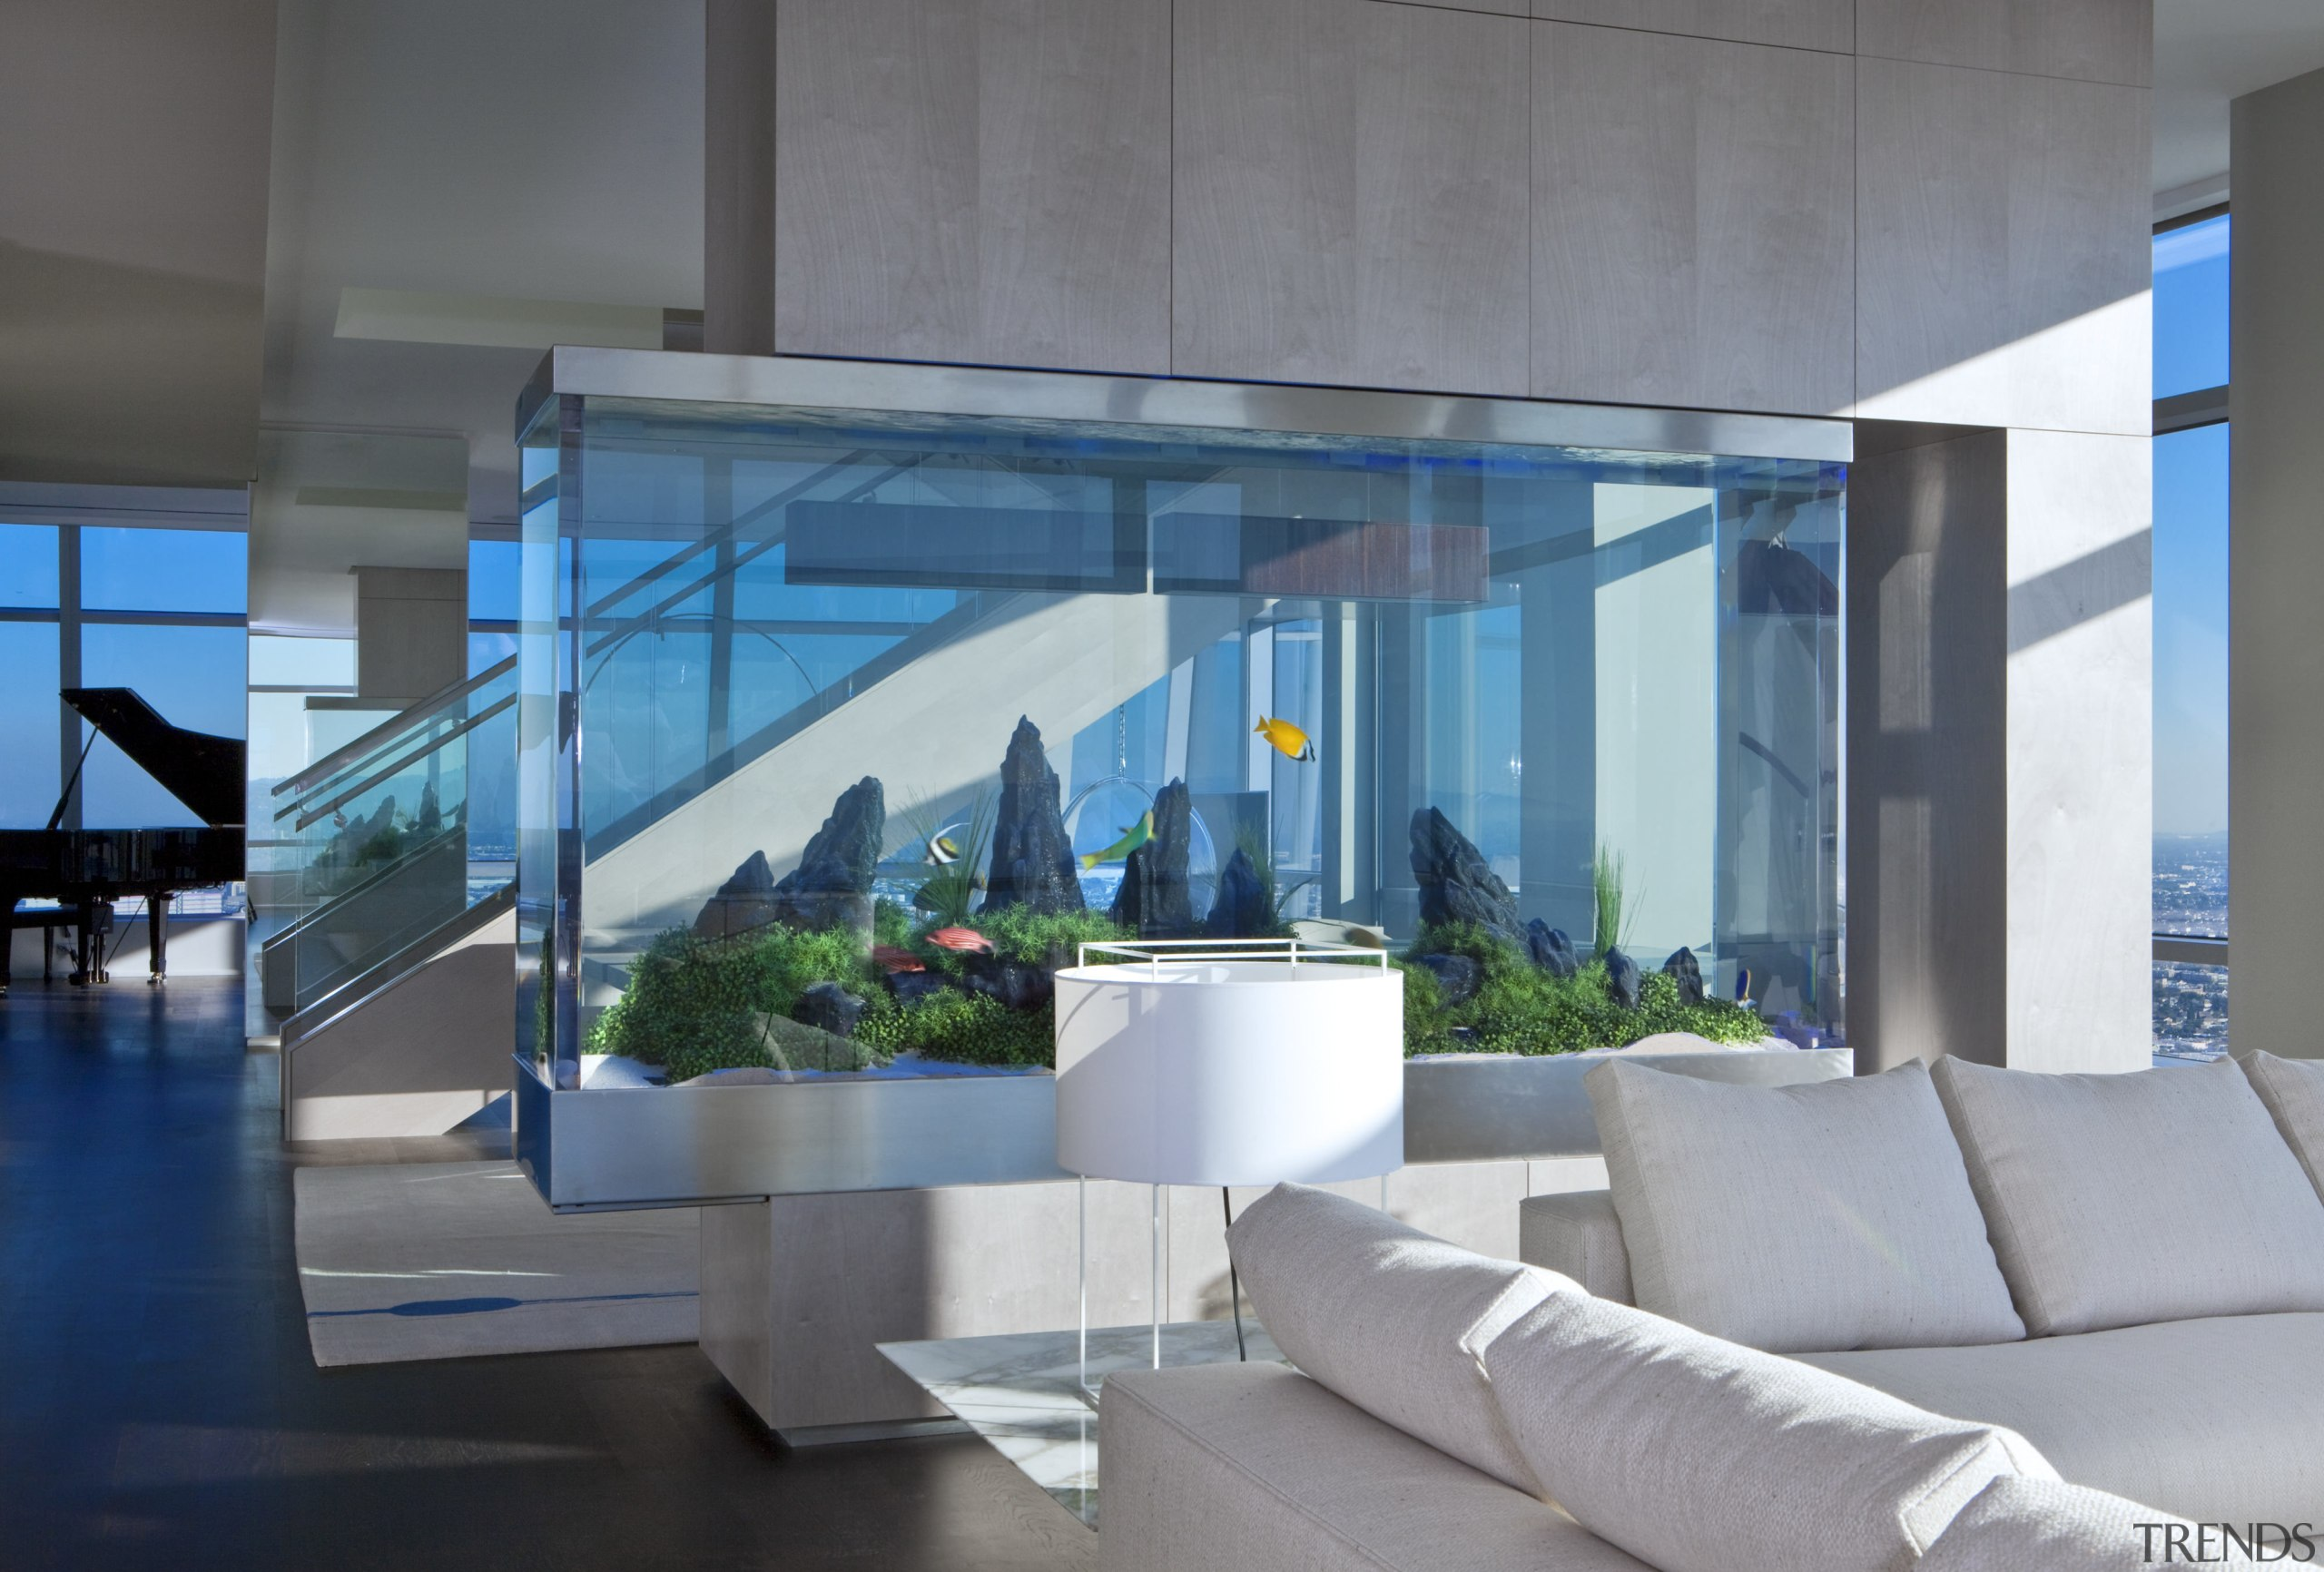 A large aquarium is a centerpiece in this architecture, condominium, daylighting, glass, home, house, interior design, lobby, real estate, gray